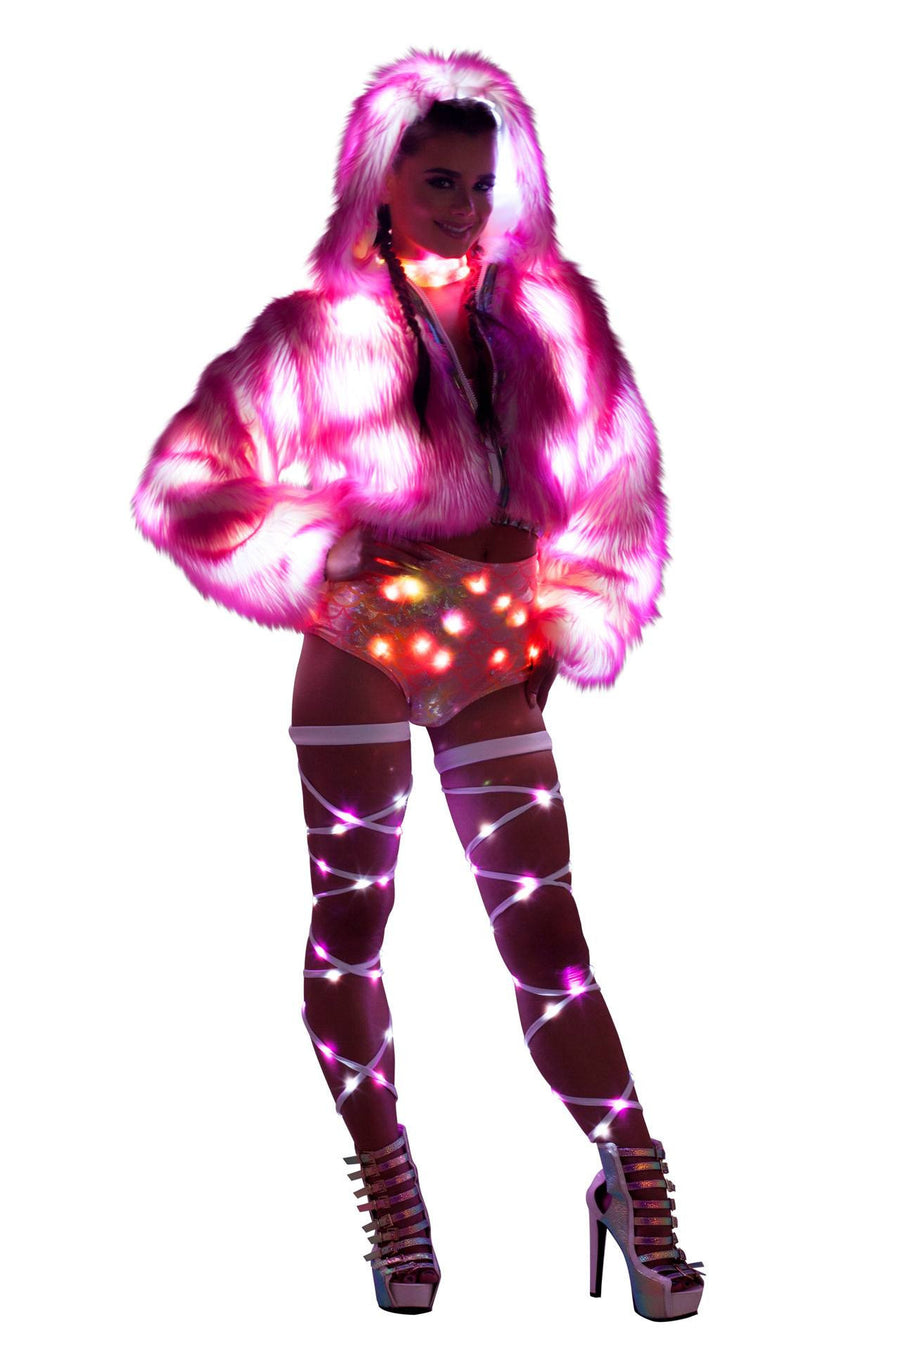 J-Valentine Light-Up Pink Cropped Jacket - , J-Valentine, YourLamode